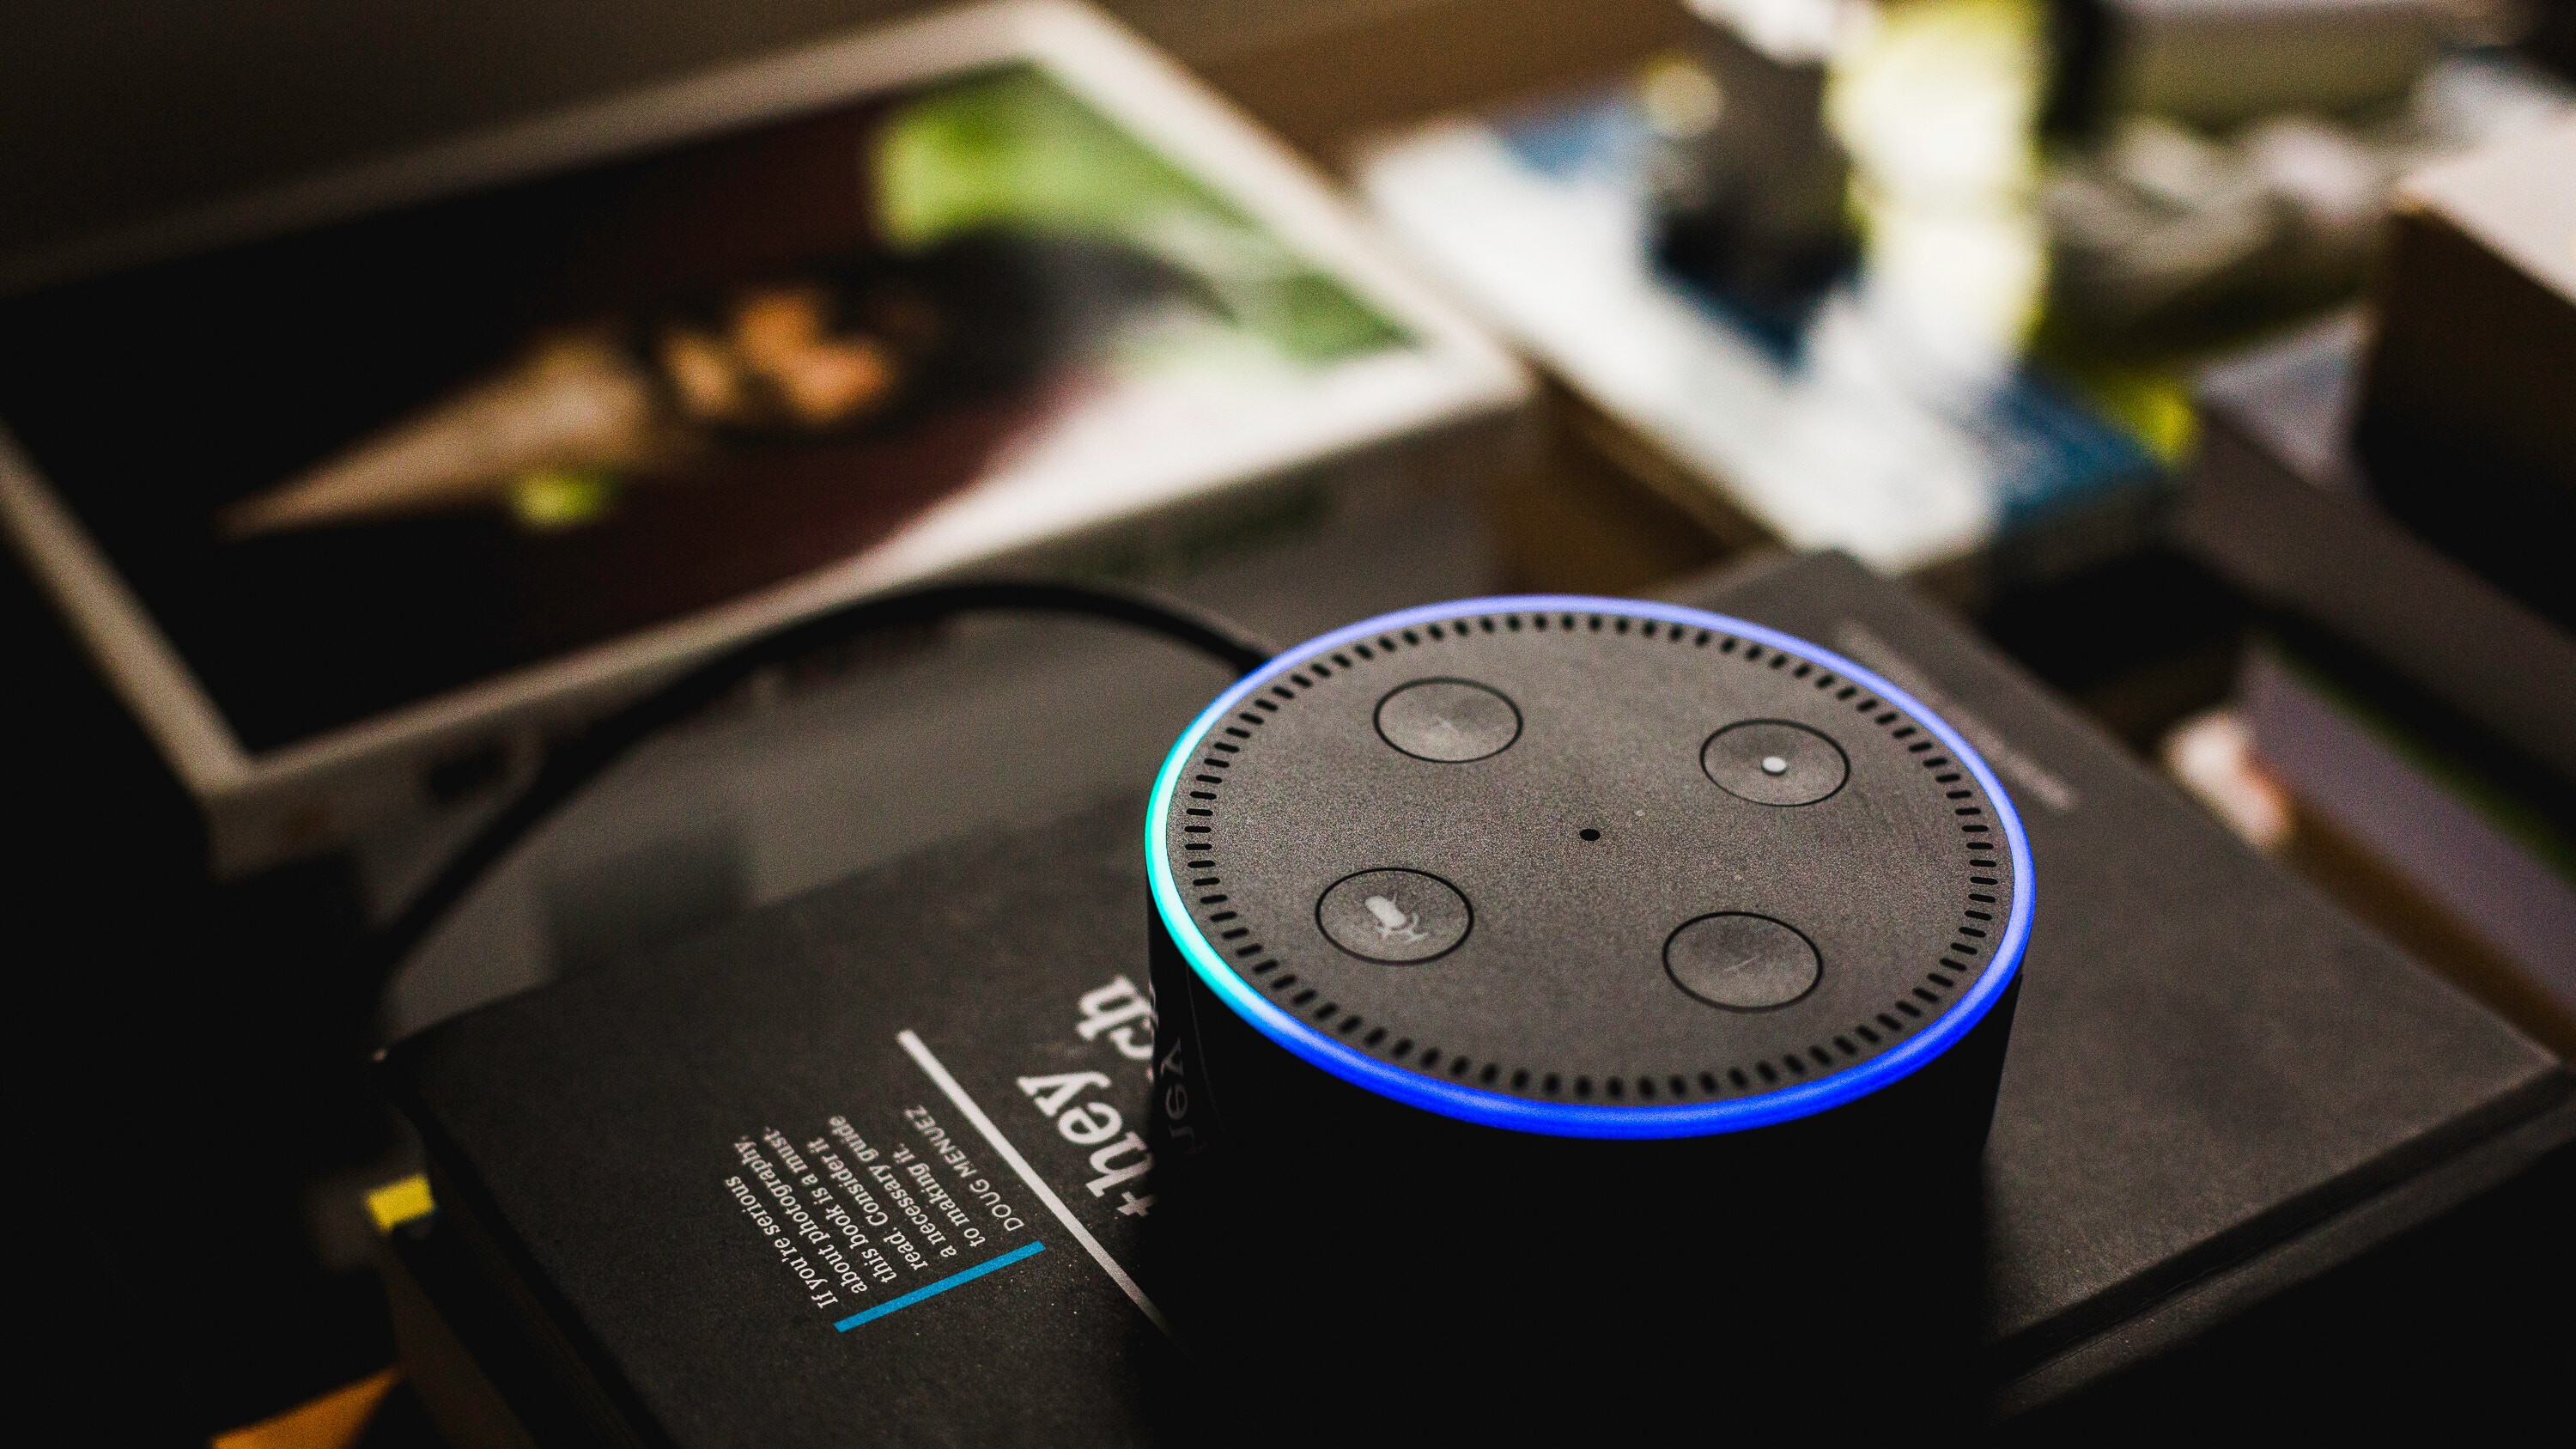 Dc5n United States It In English Created At 2018 07 28 0009 Everycircuit Android Apps On Google Play New Amazon Echo Dot Design Revealed Leaks 447 19